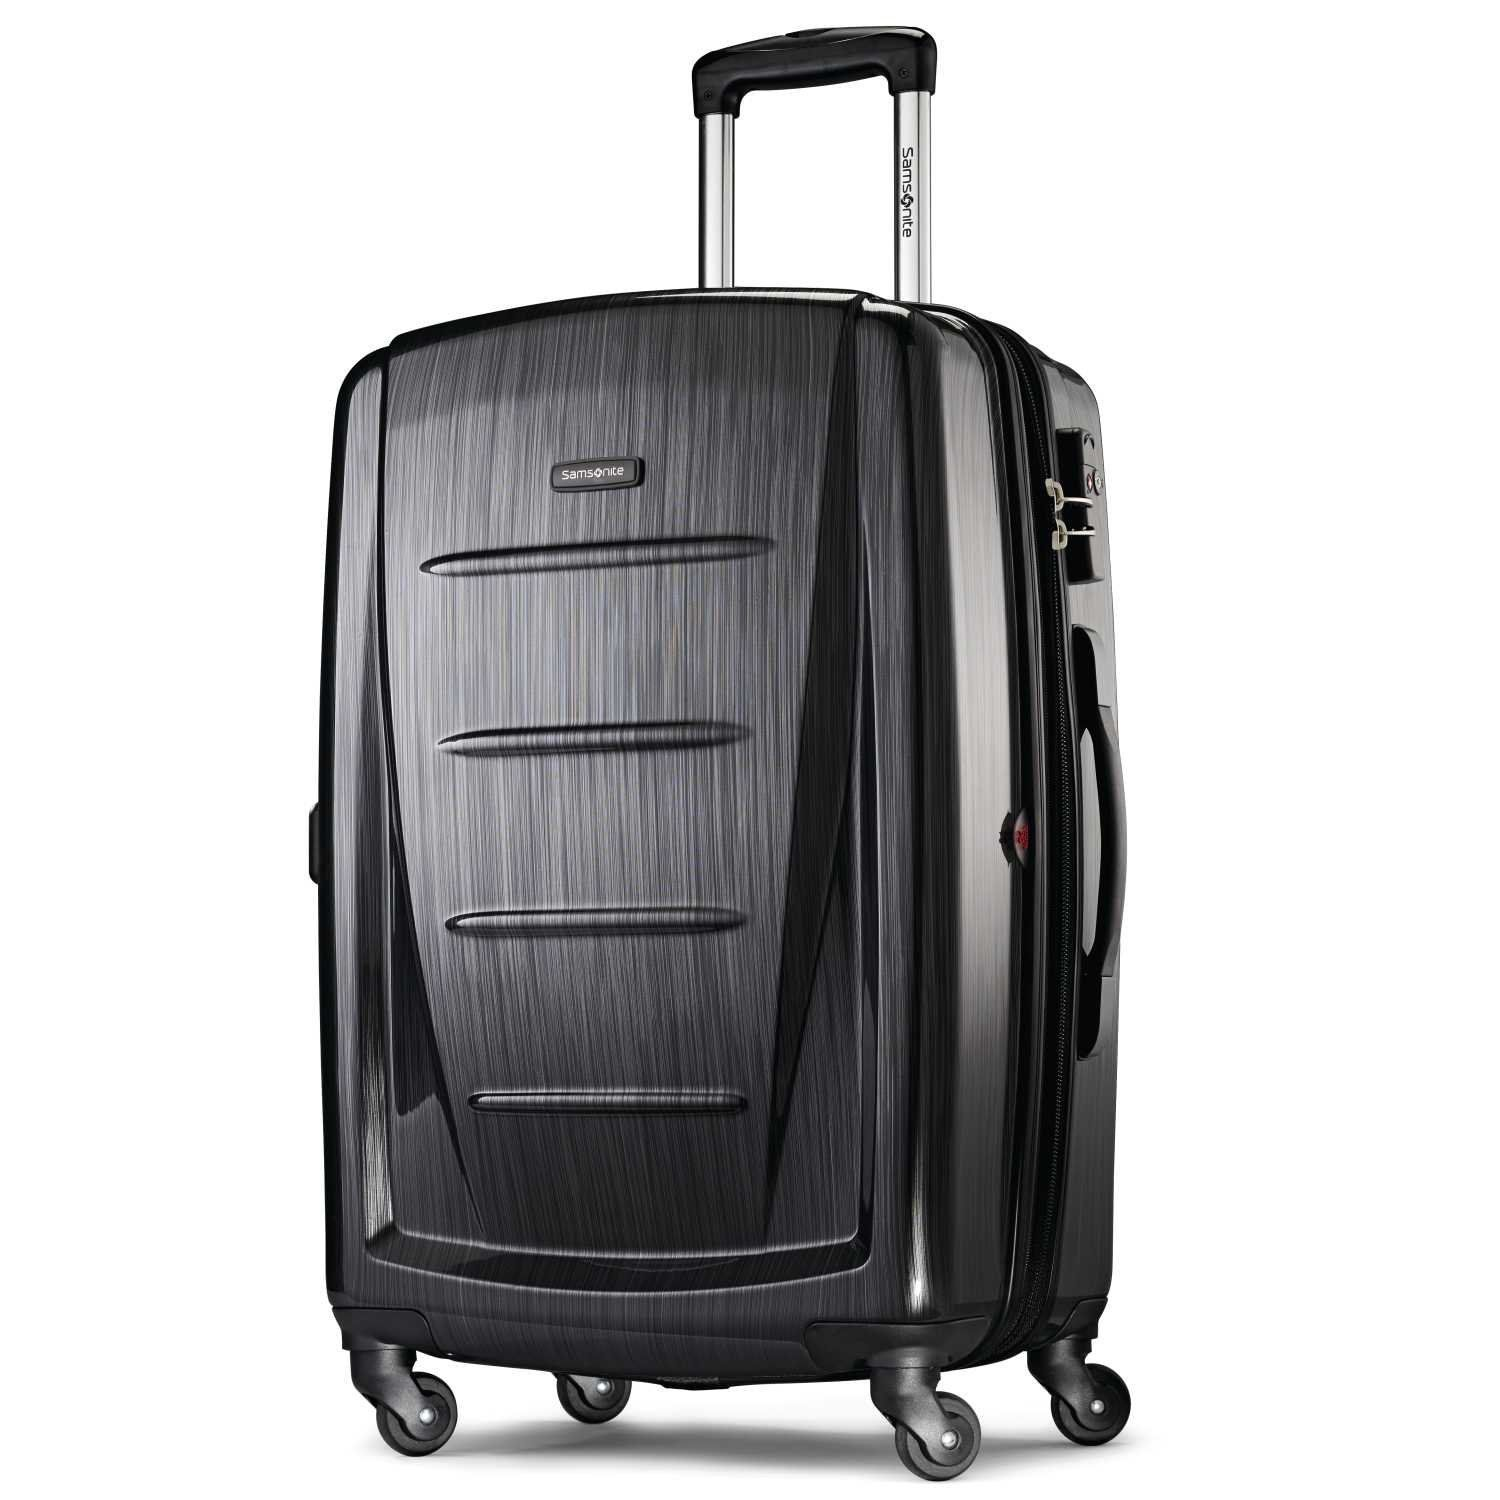 Best Suitcases 2019 The 8 Best Luggage Items for Under $200 in 2019